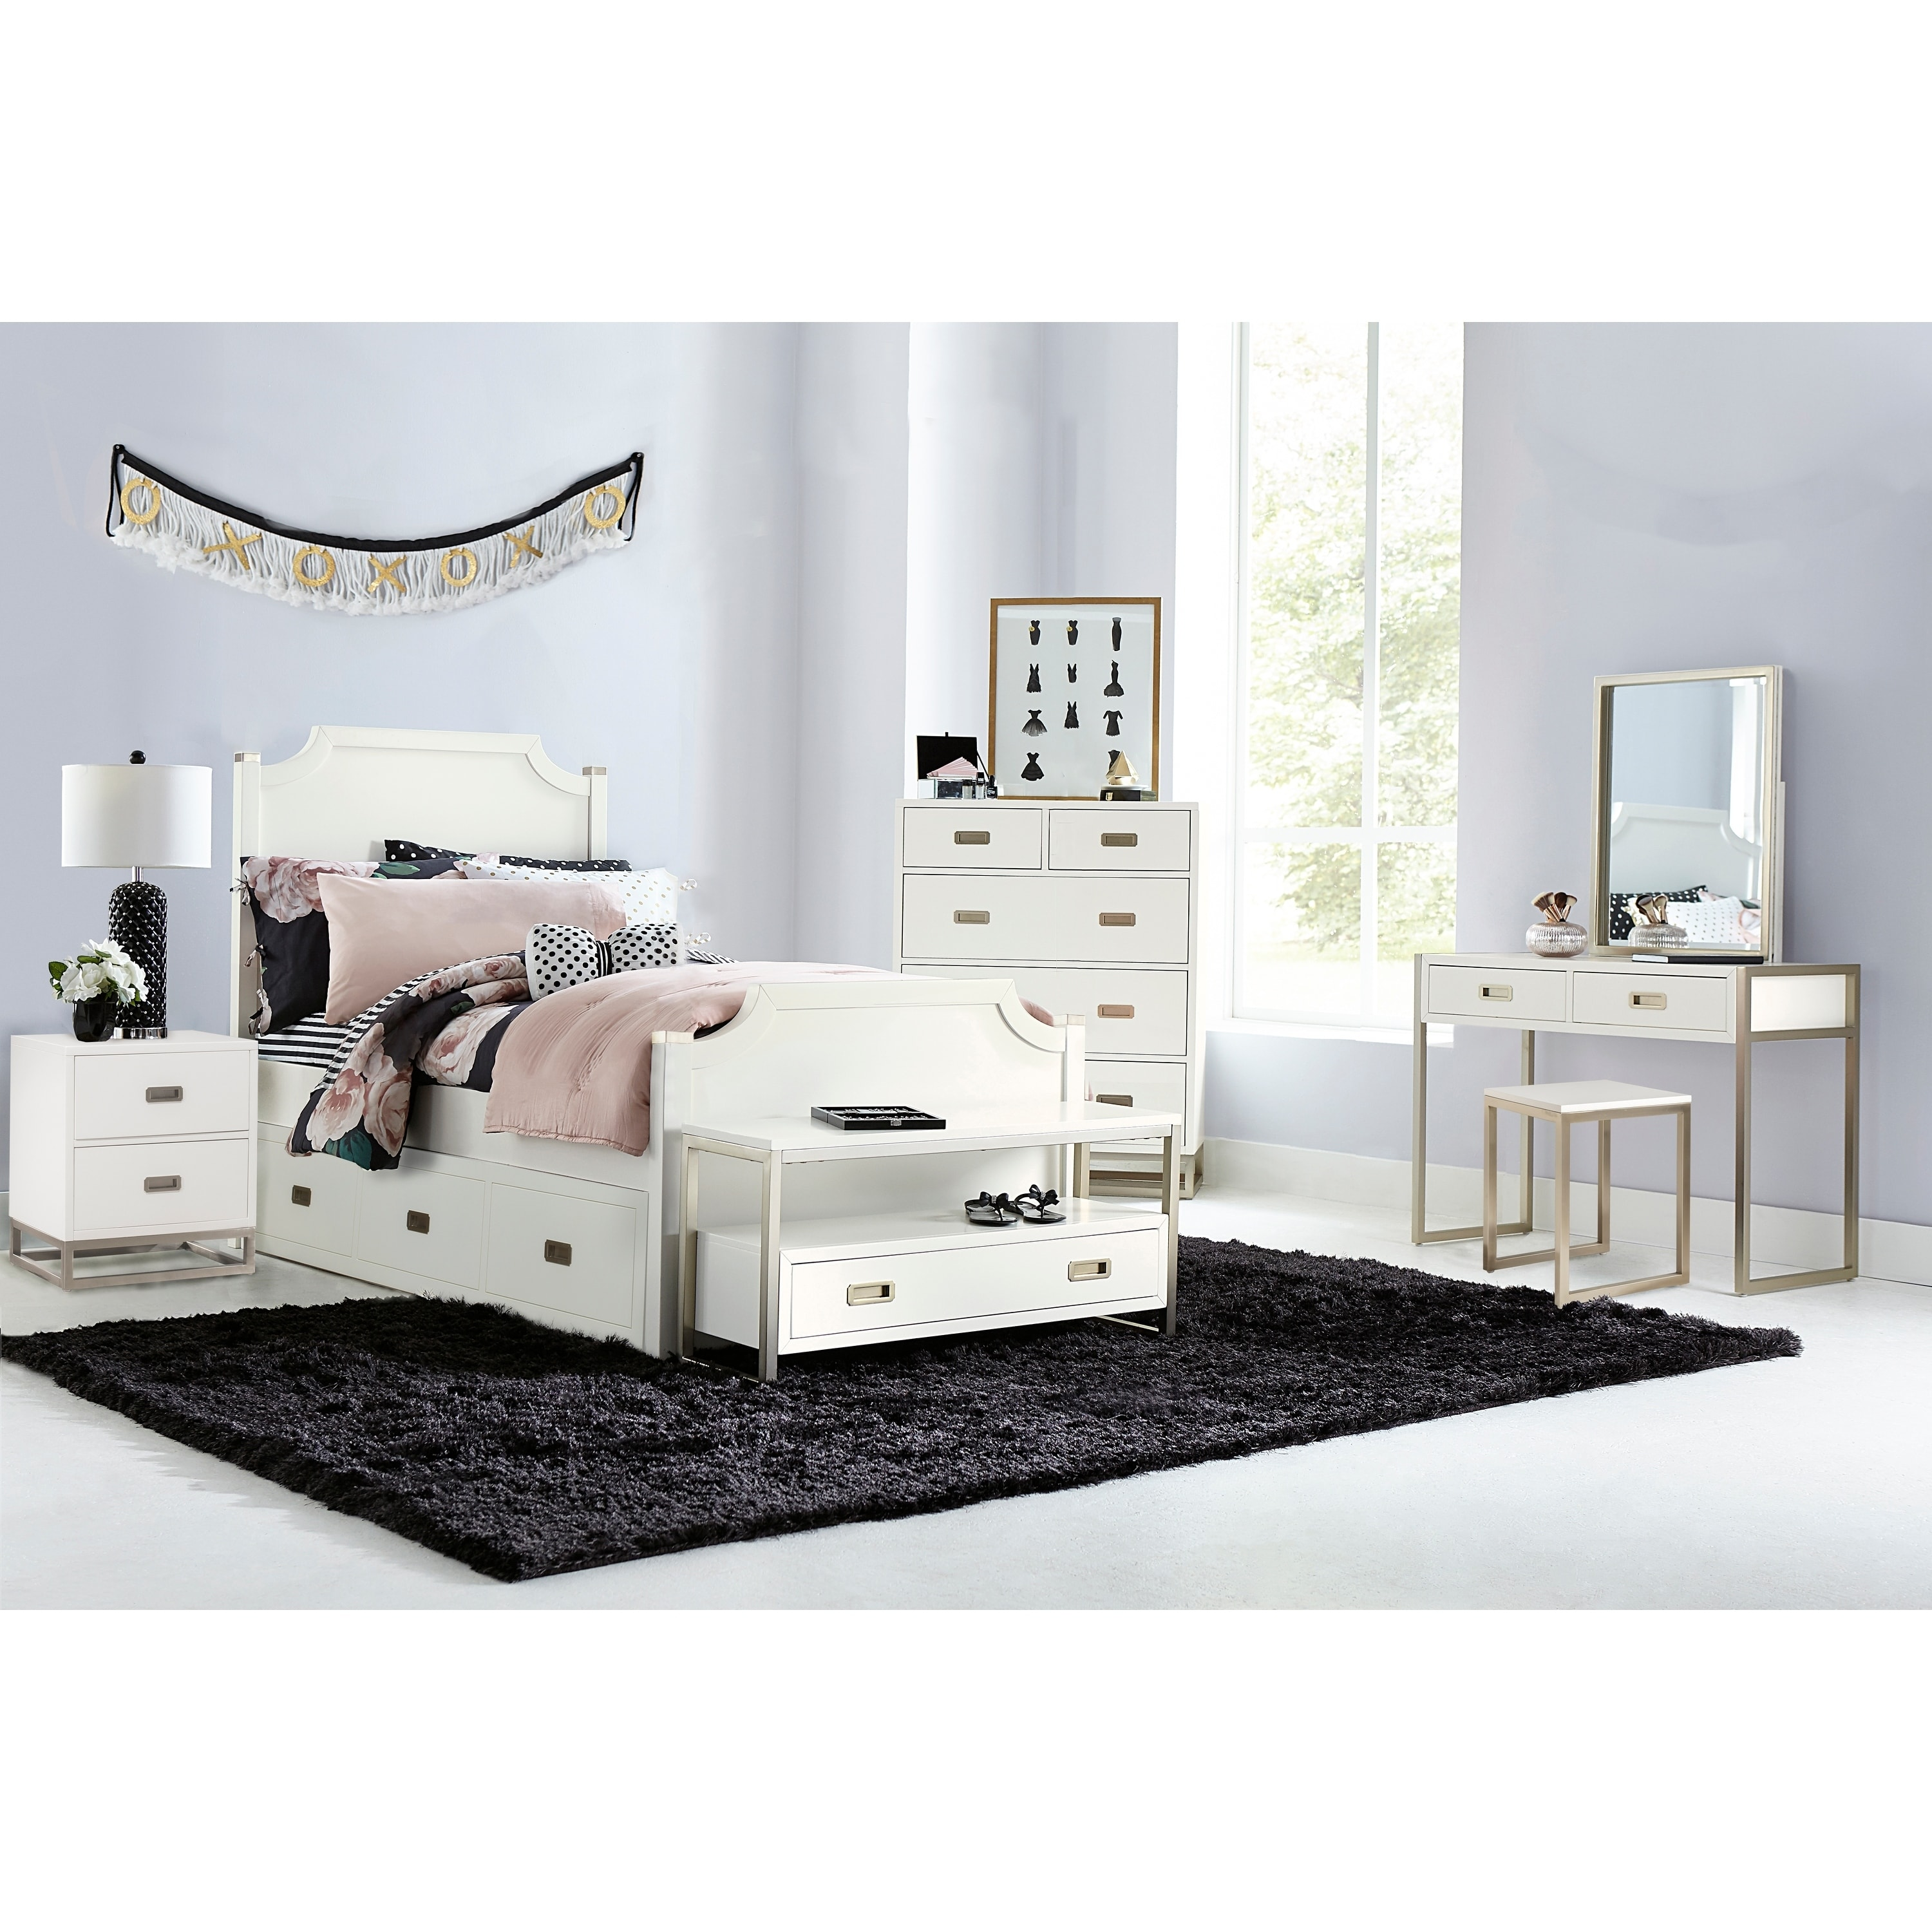 NE Kids Hillsdale Tinley Park Full Panel Bed With Trundle, Soft White